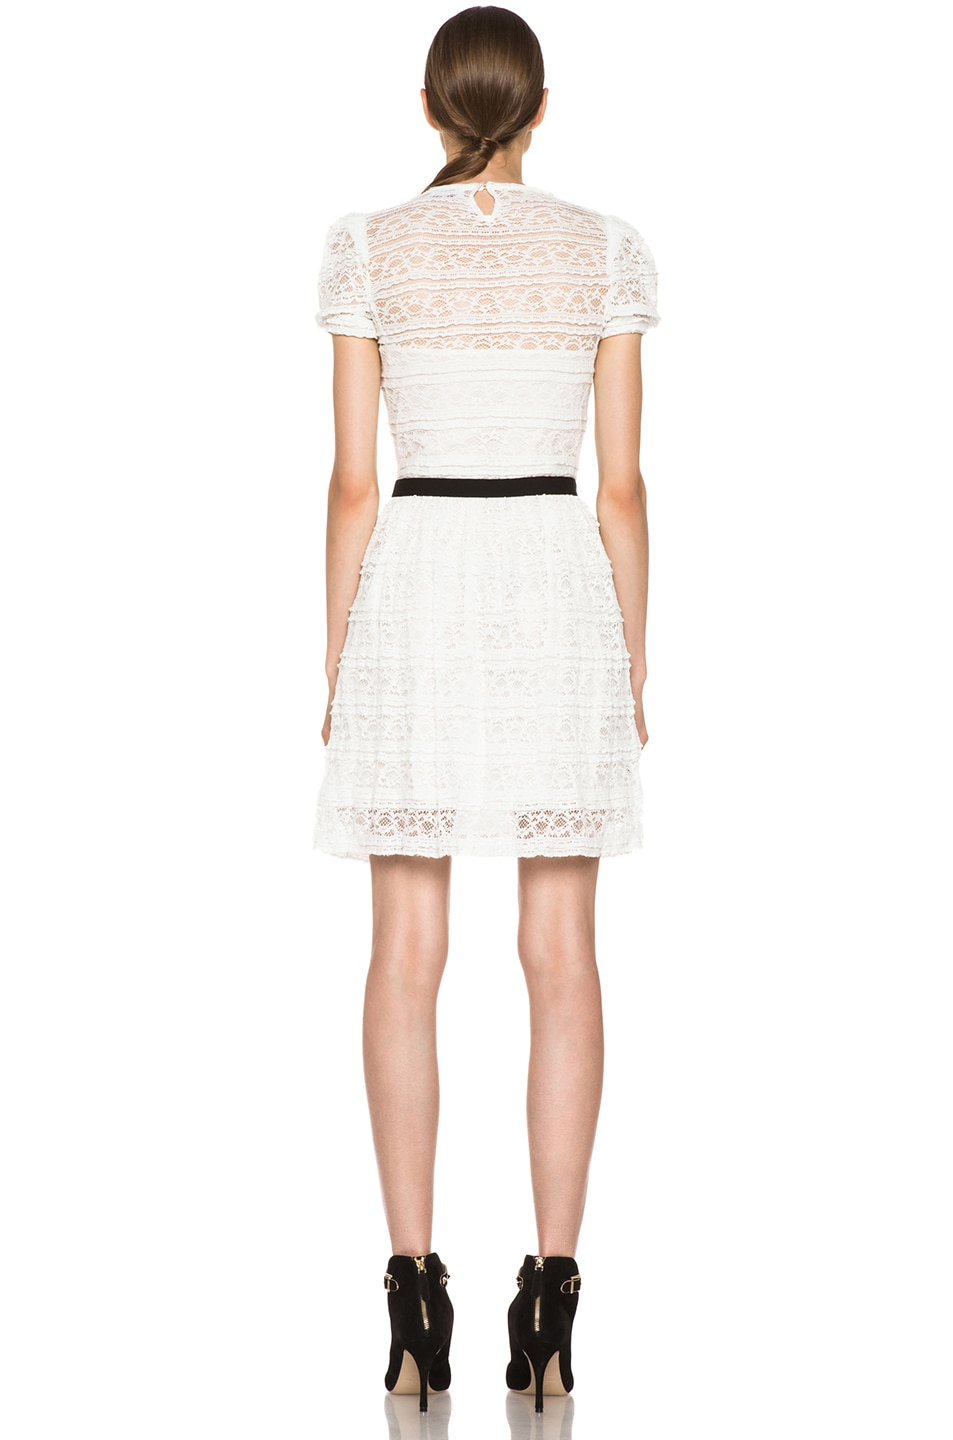 Image 4 of Red Valentino Lace Knit Dress in White & Black